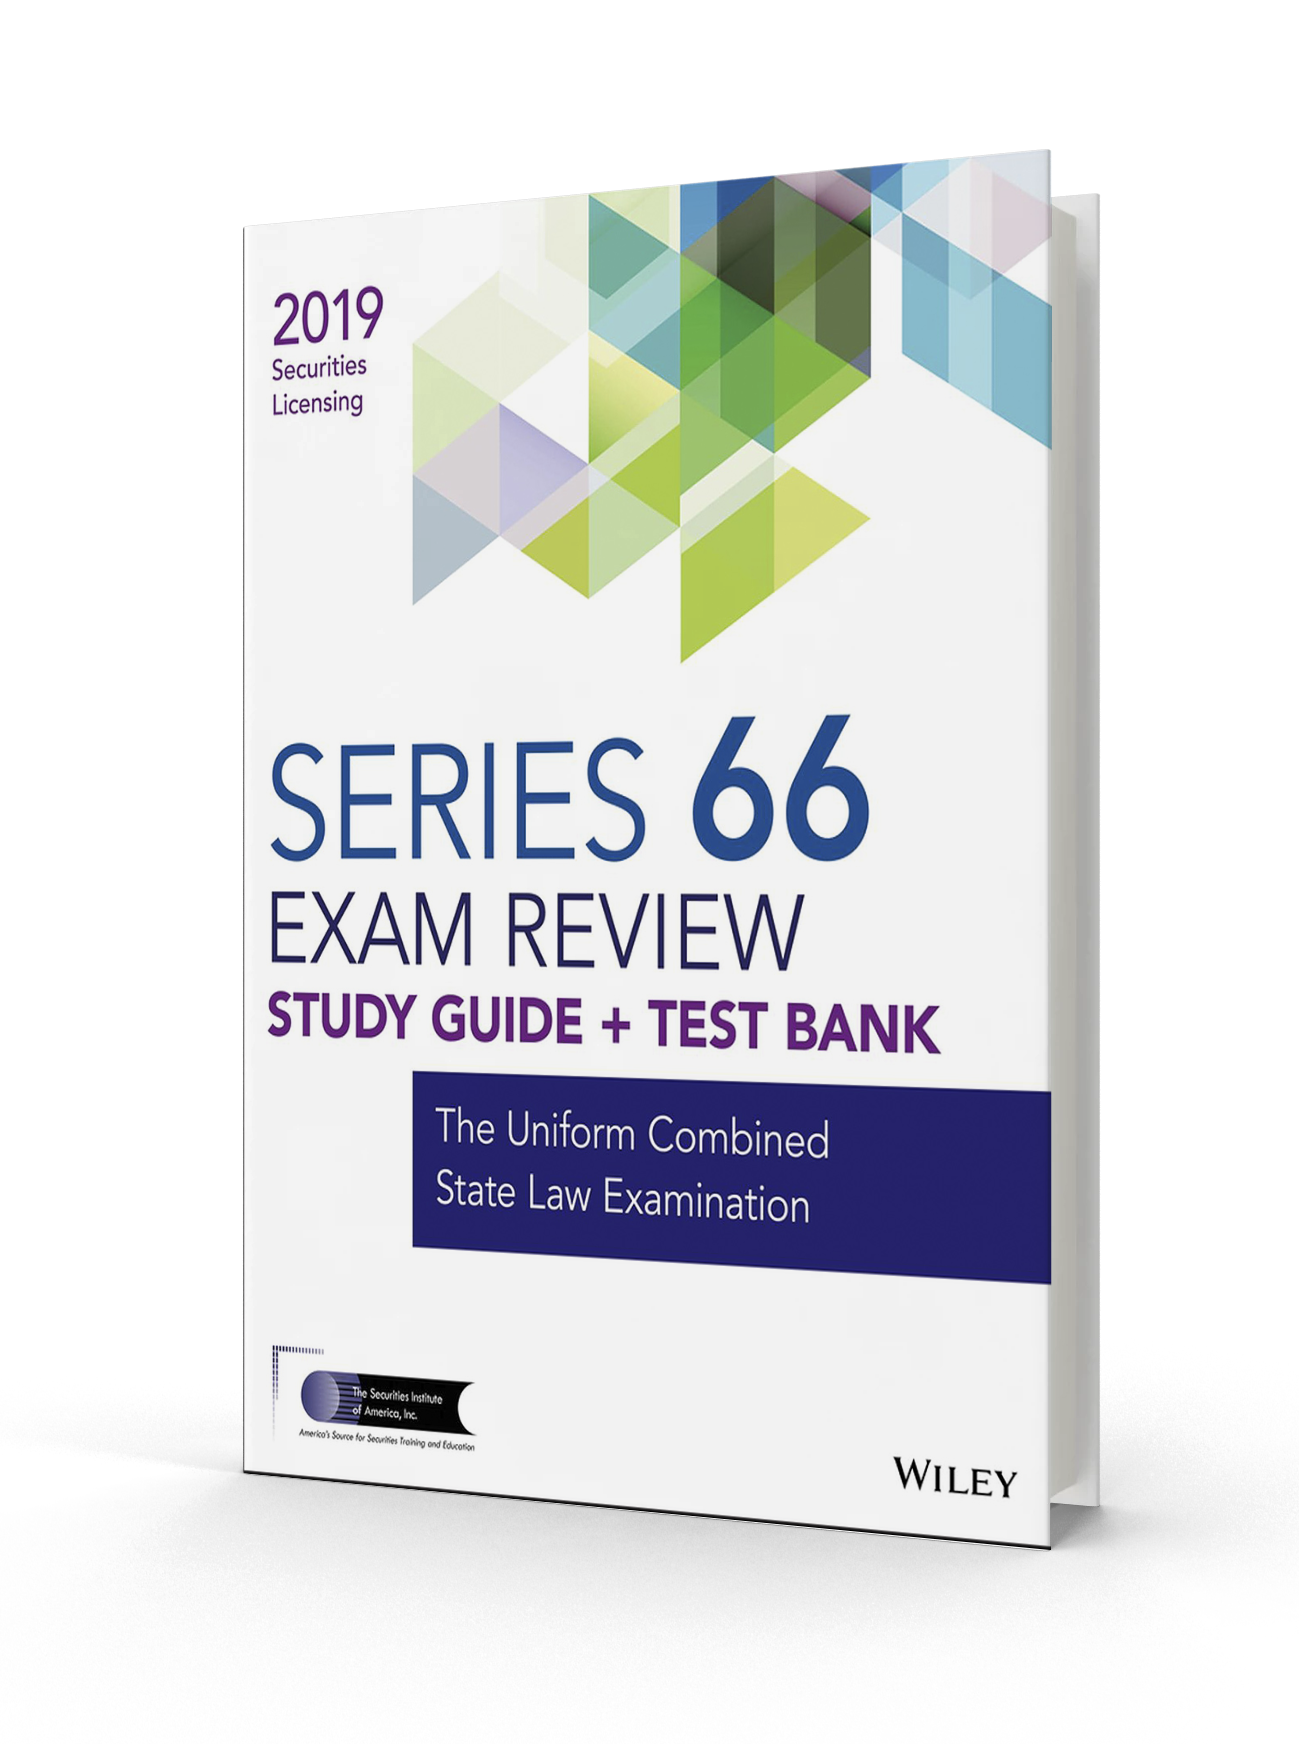 Series 66 Exam textbook and sudy guide